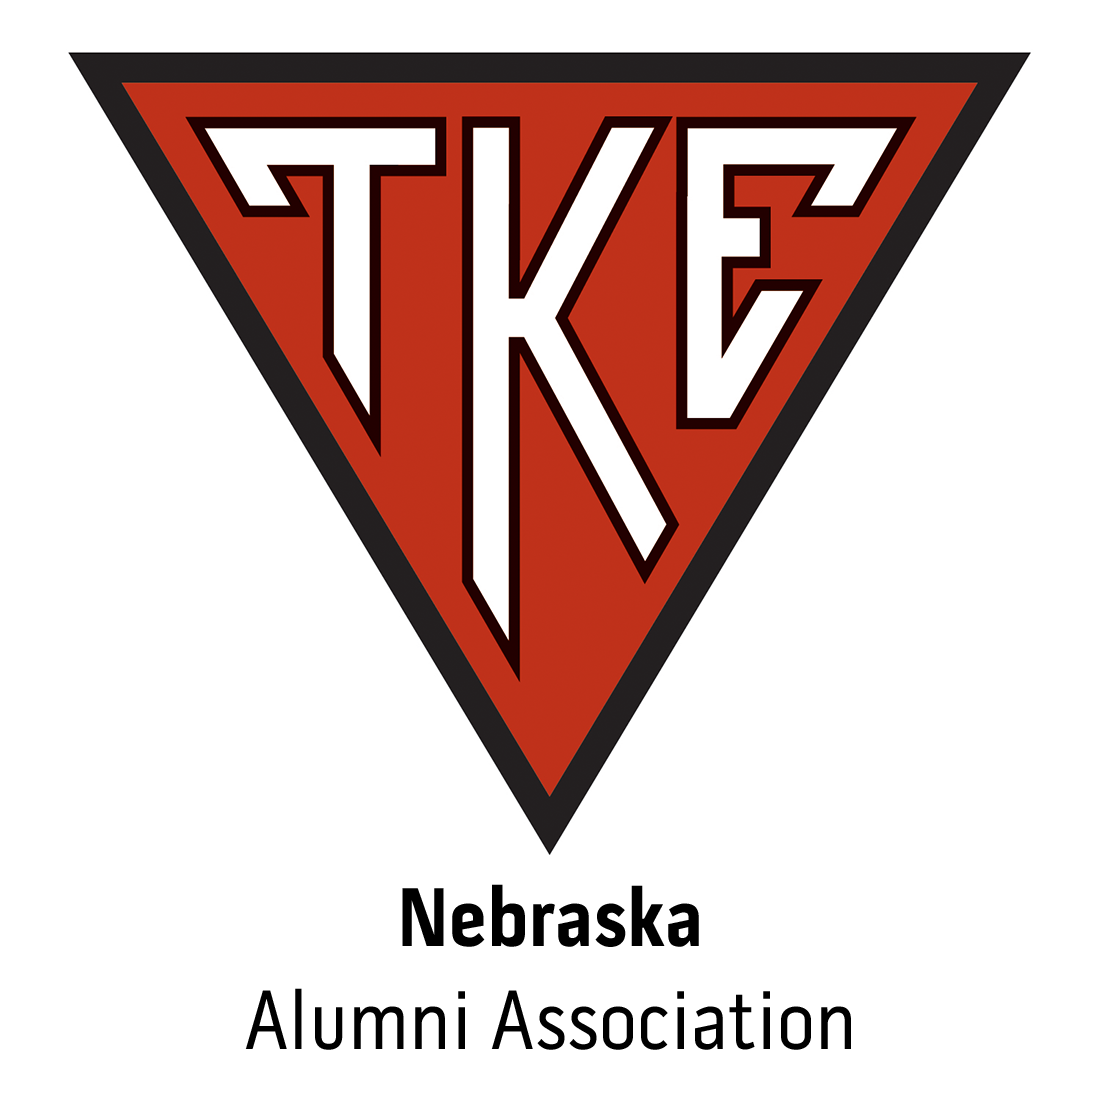 Nebraska Alumni Association at State of Nebraska